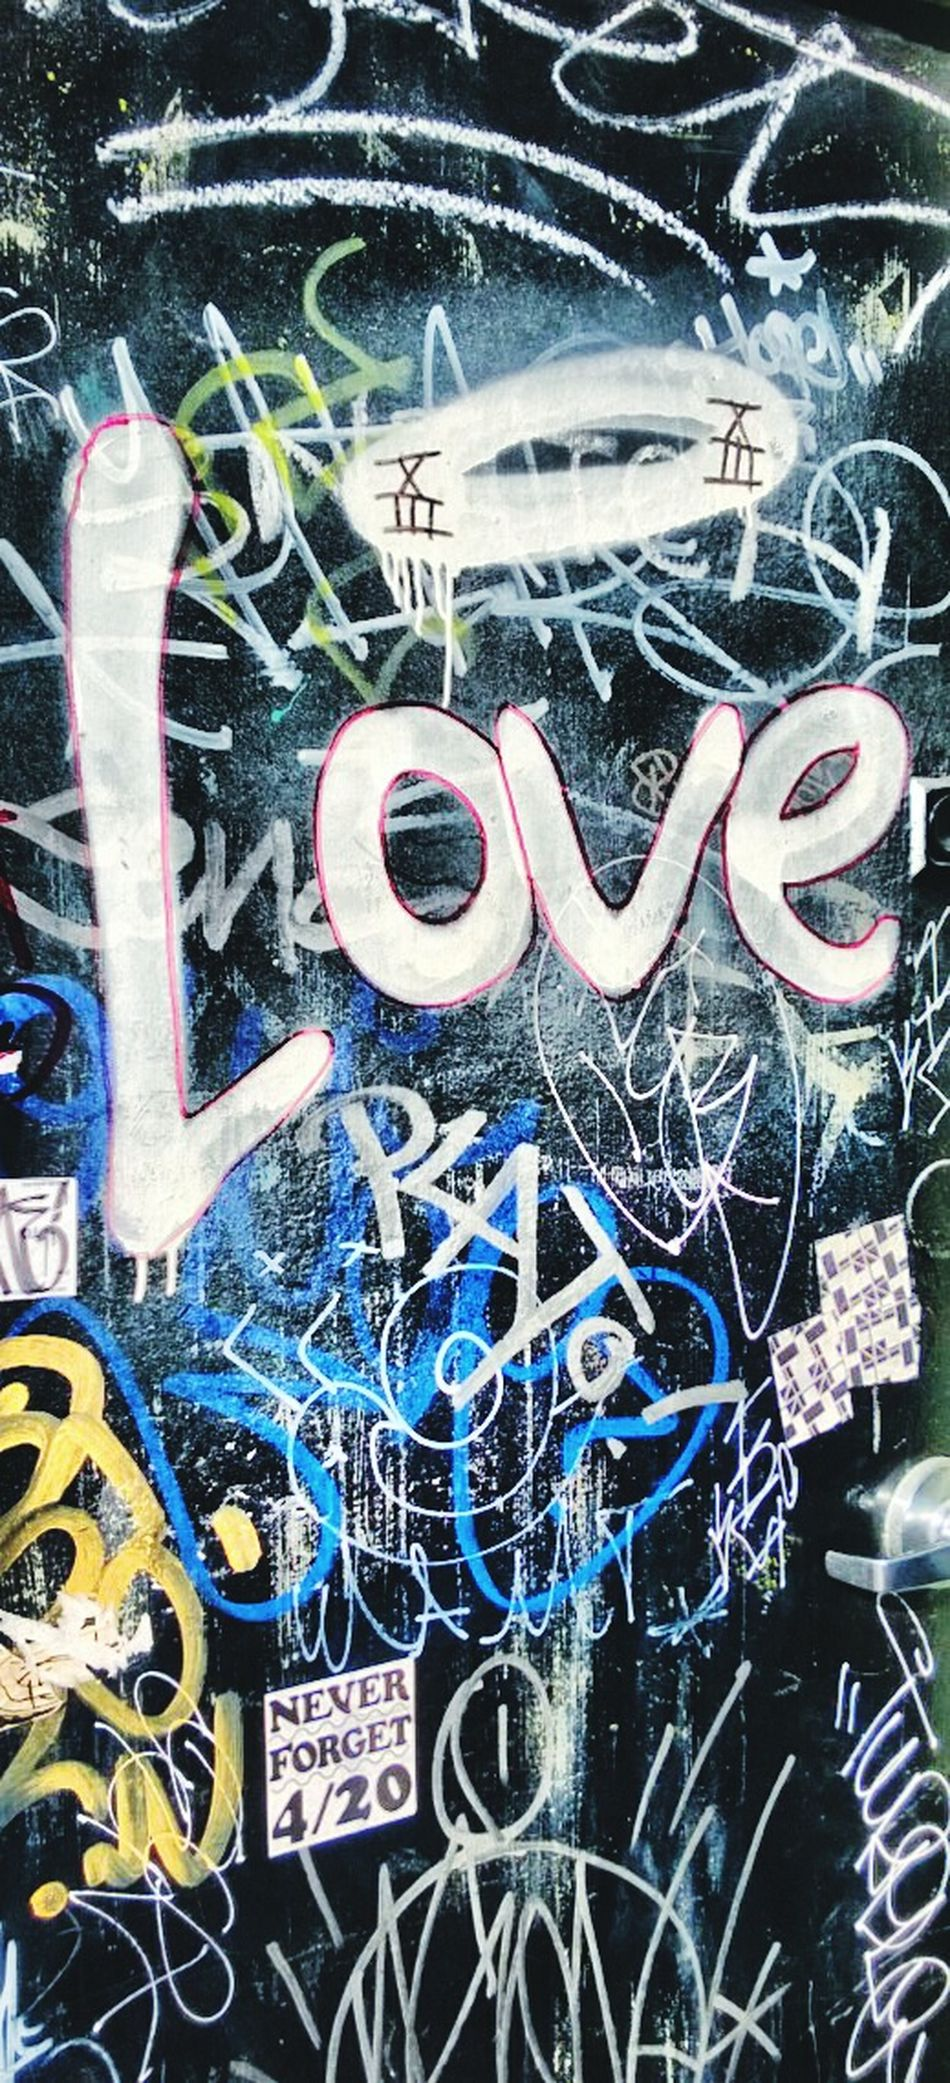 """""""For the moment, each passing wave seems like a shy breeze. Waiting & worthy for oppertunity"""" -dSt Love Lovers And Friends Creativity Symbol ArtWork Graffity And Street Art Graffity"""